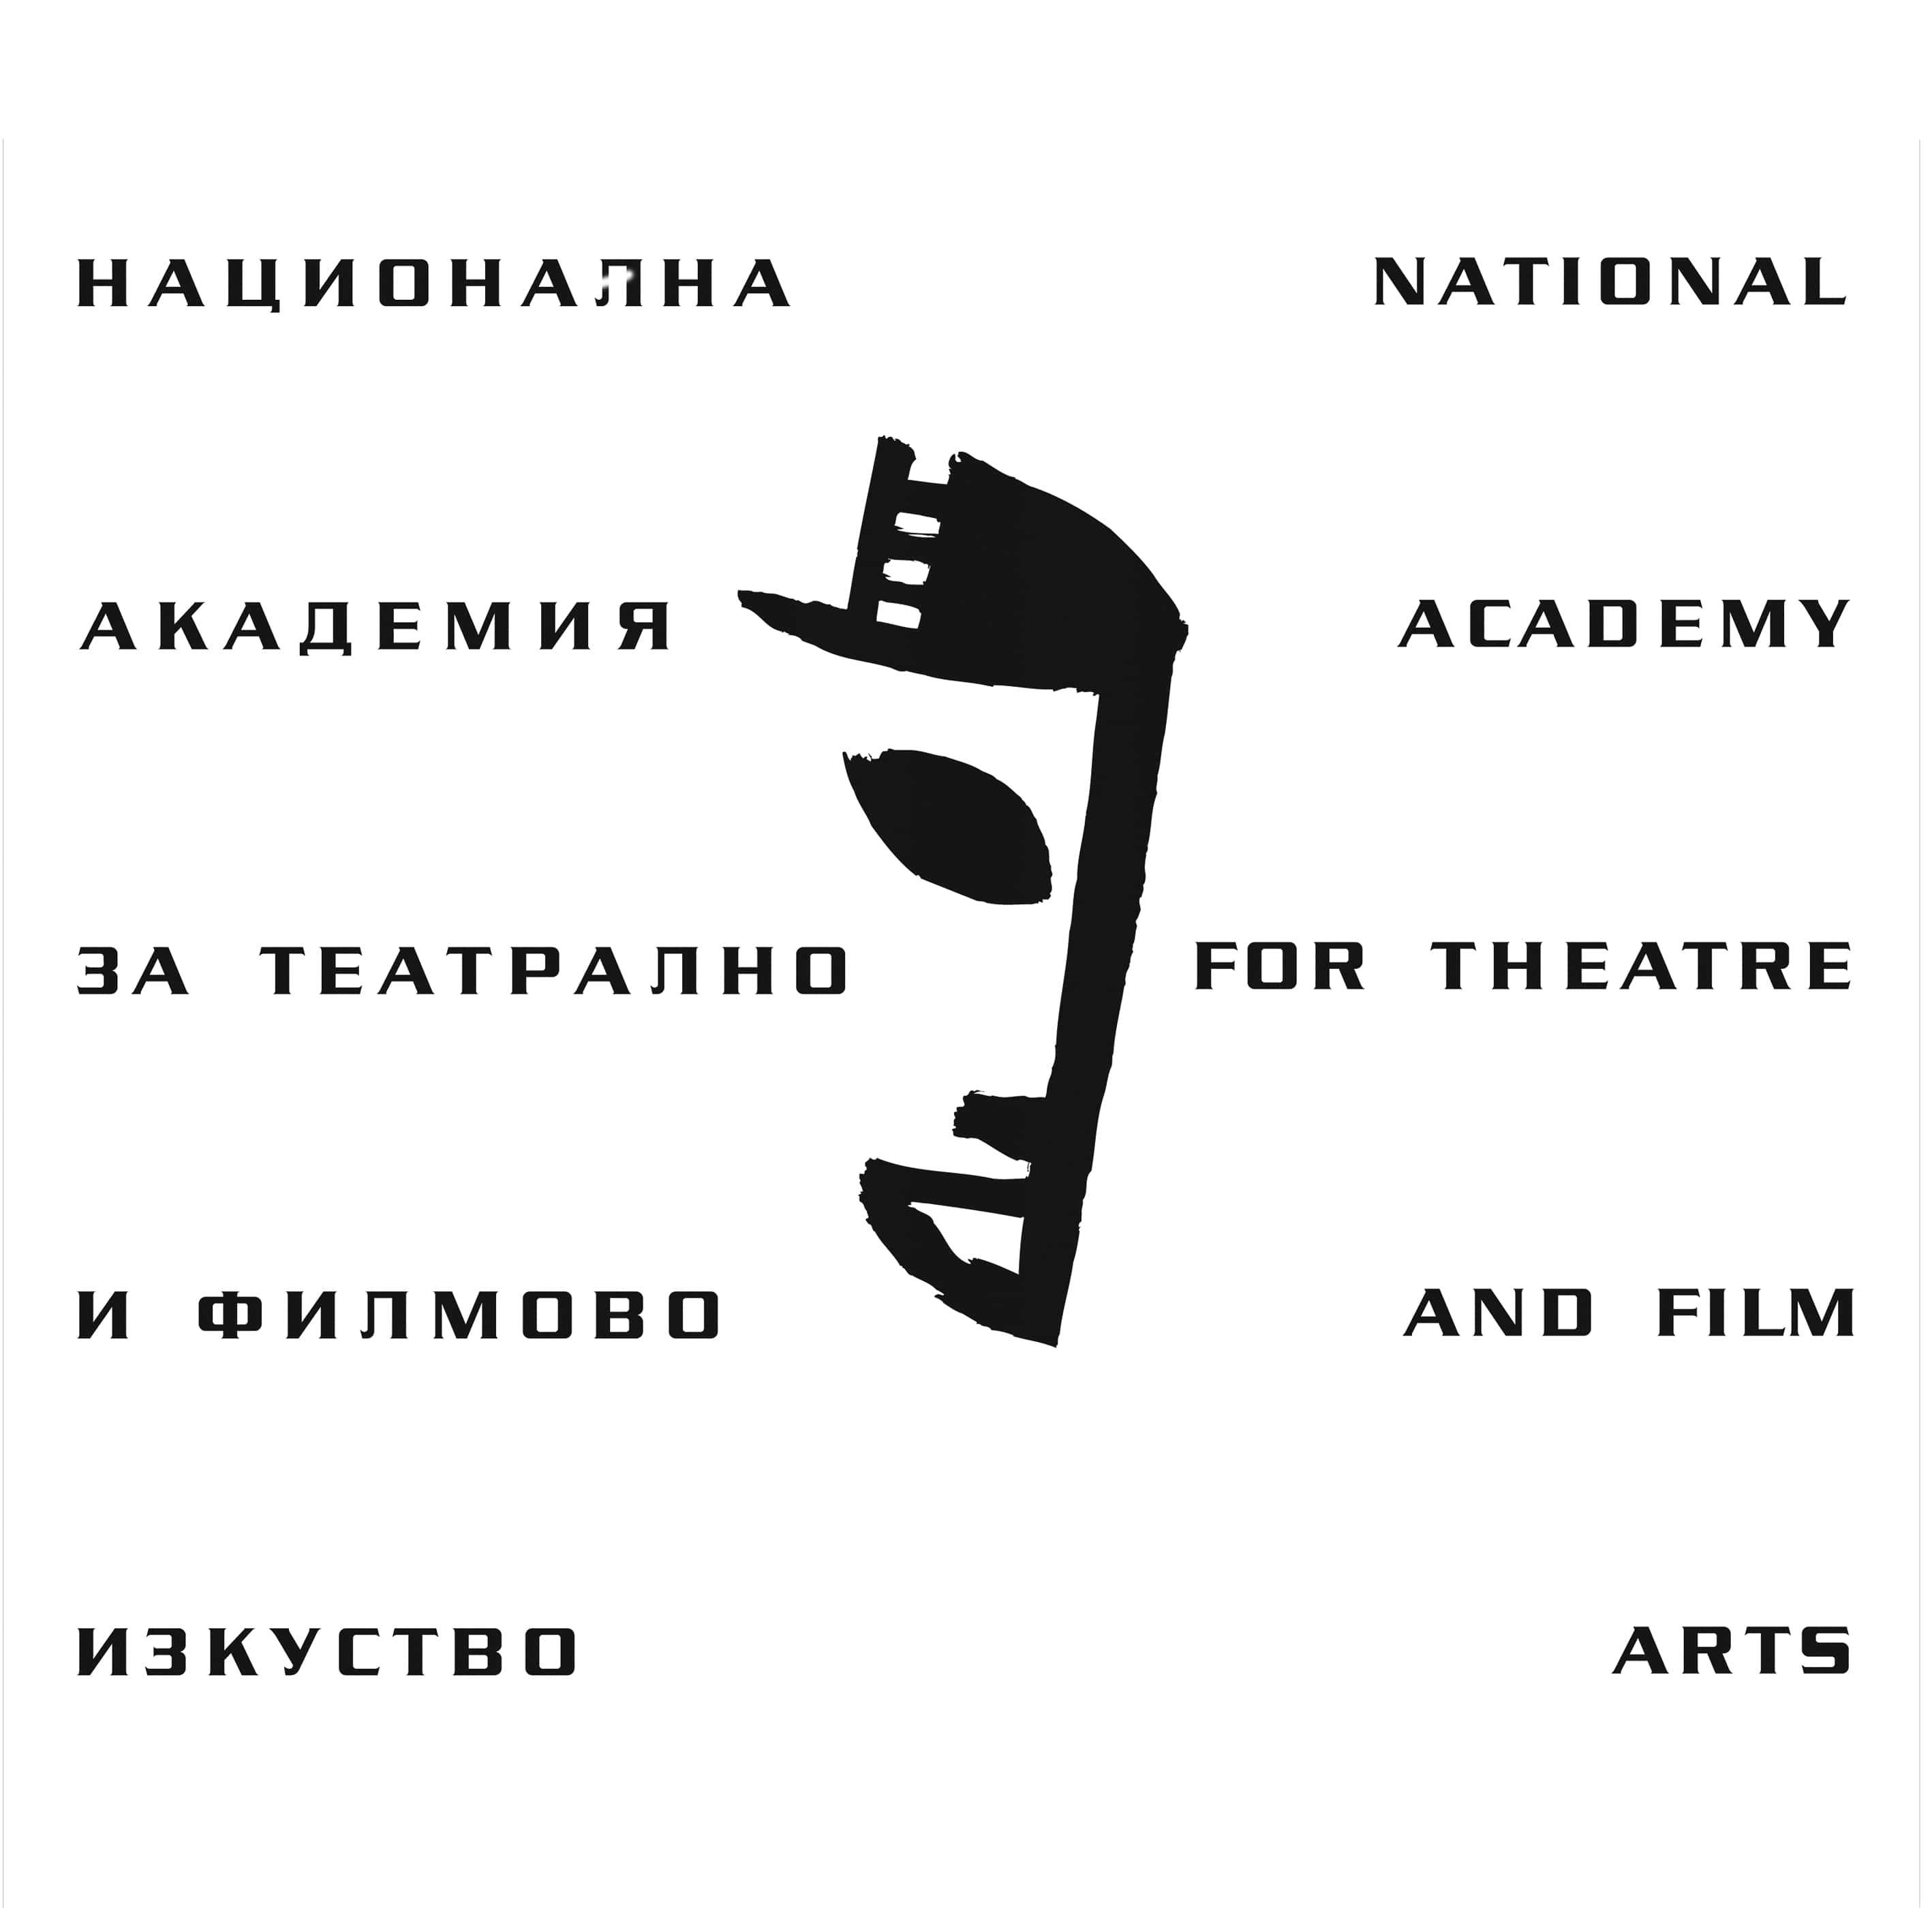 Александър Манджуков - Krastyo Sarafov National Academy for Theatre and Film Arts